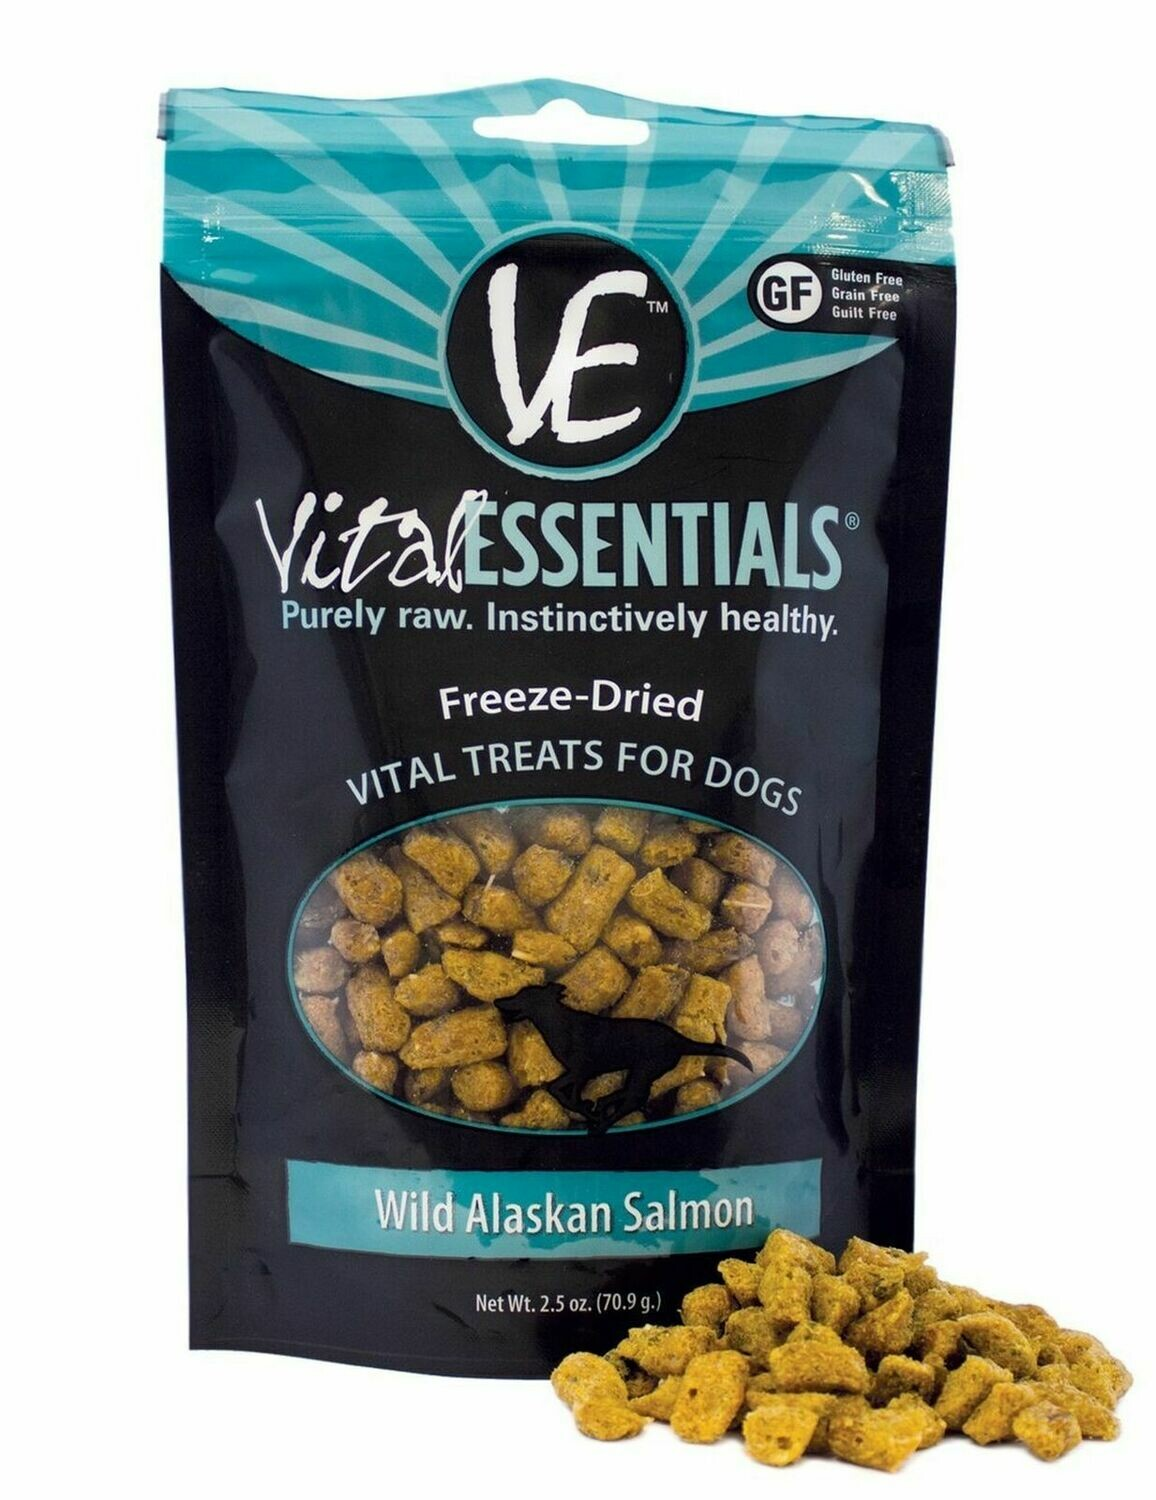 Vital Essentials Freeze-dried Wild Alaskan Salmon Treats 2.5oz (5/19)